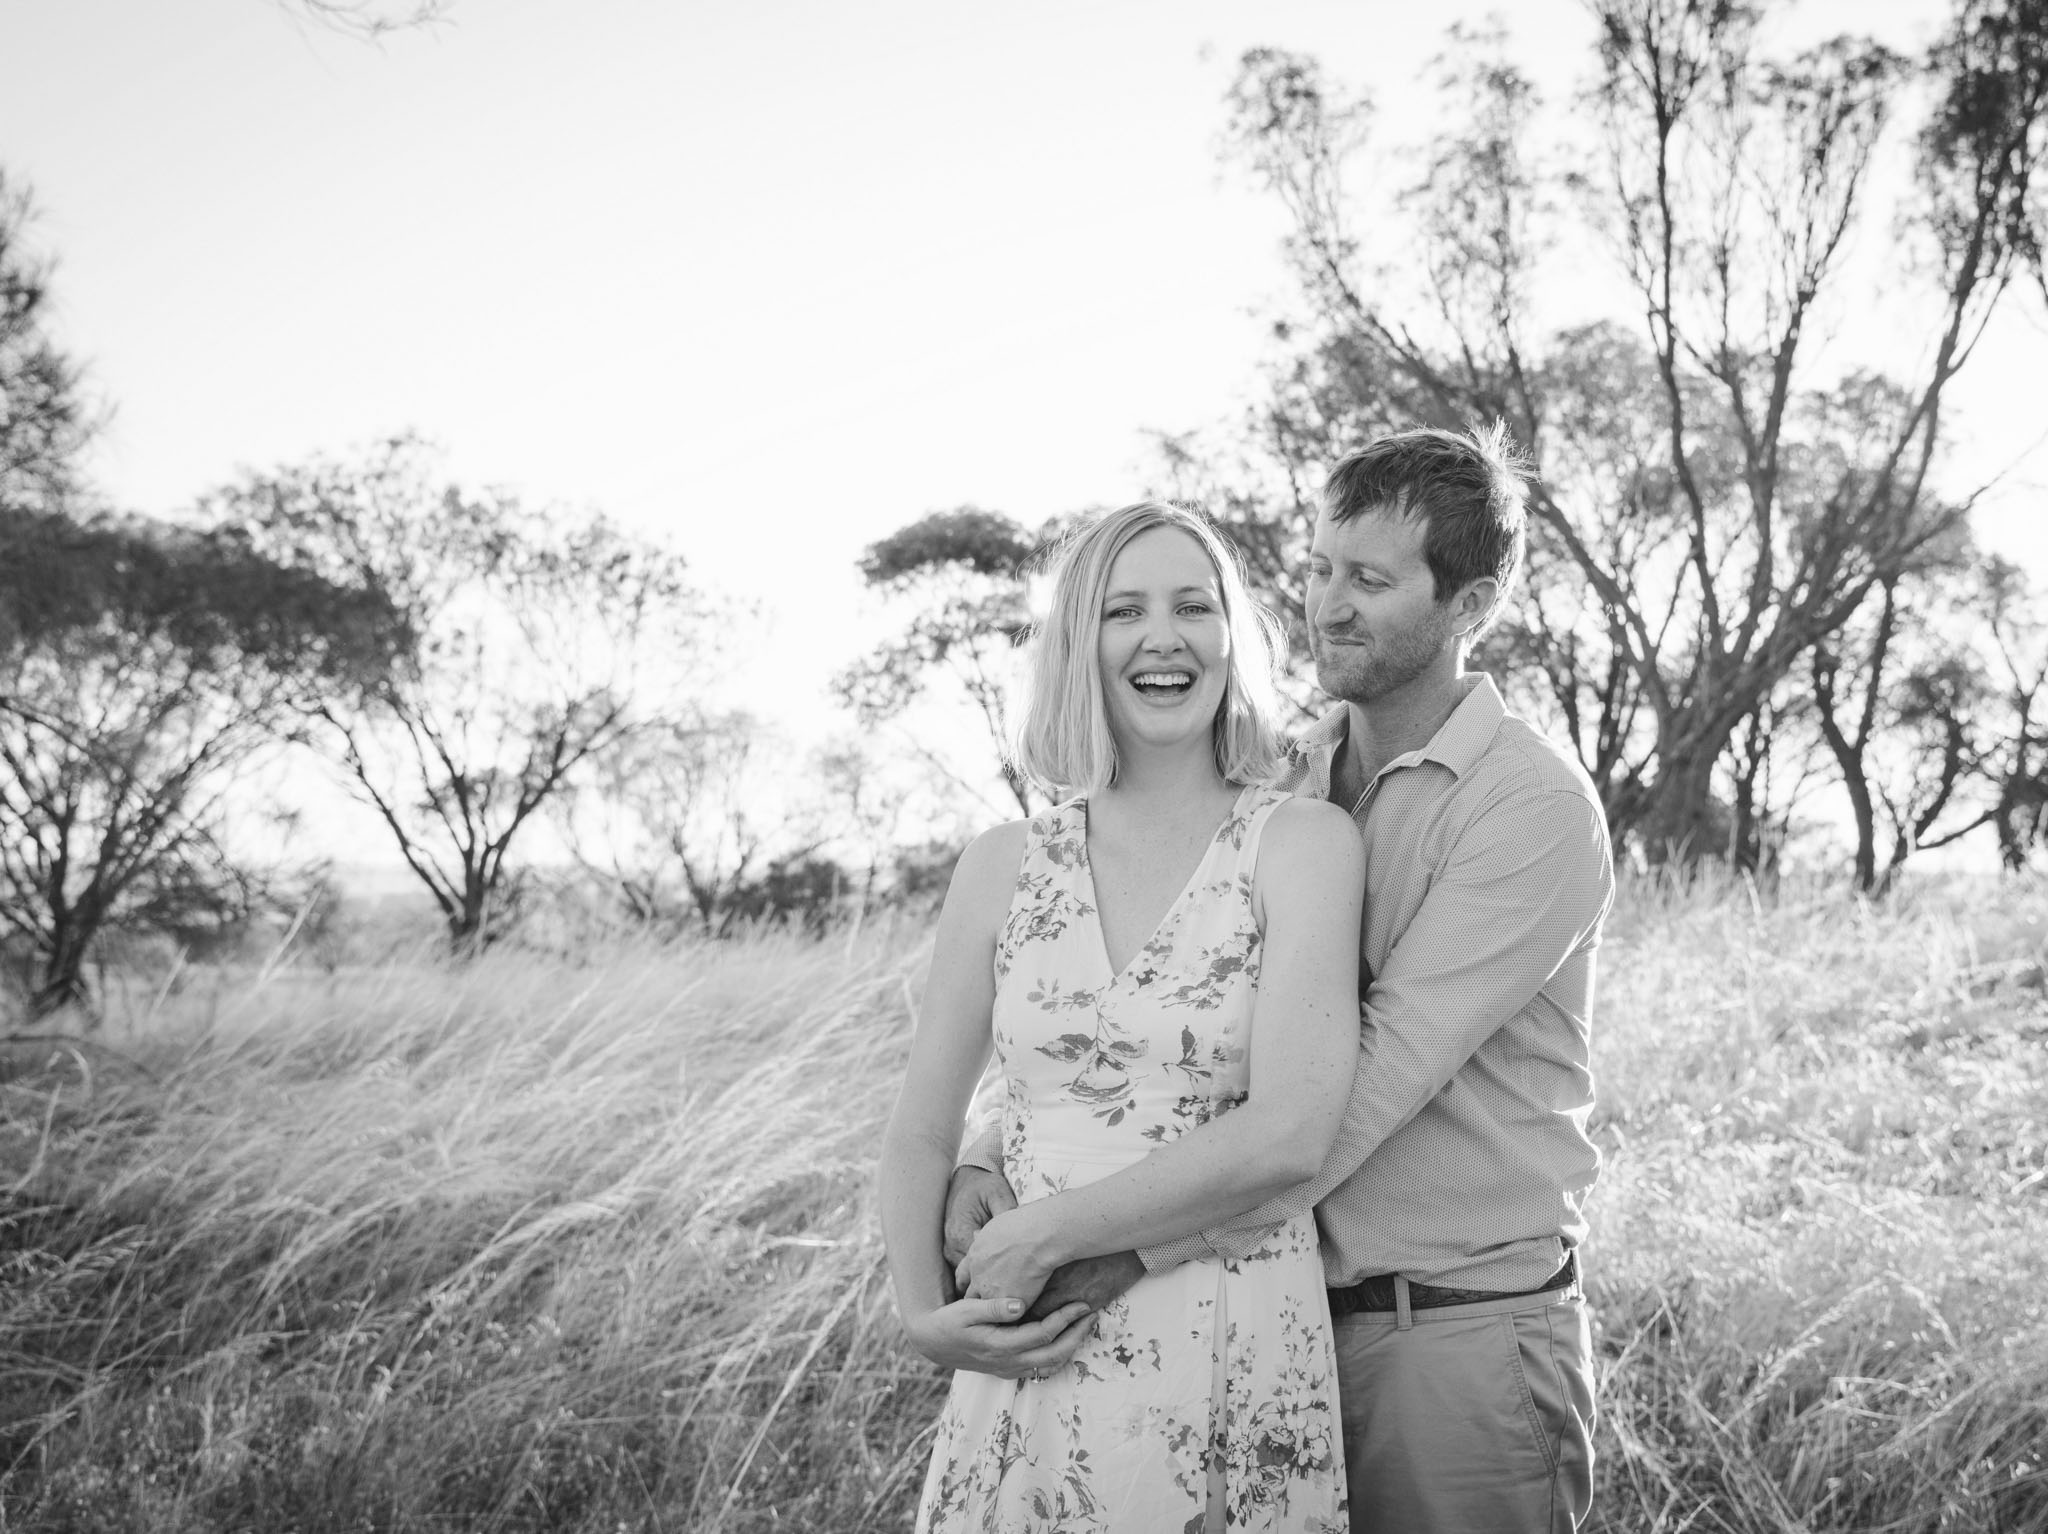 Couples engagement session on farm in the country in rural Northam Wheatbelt Avon Valley Western Australia